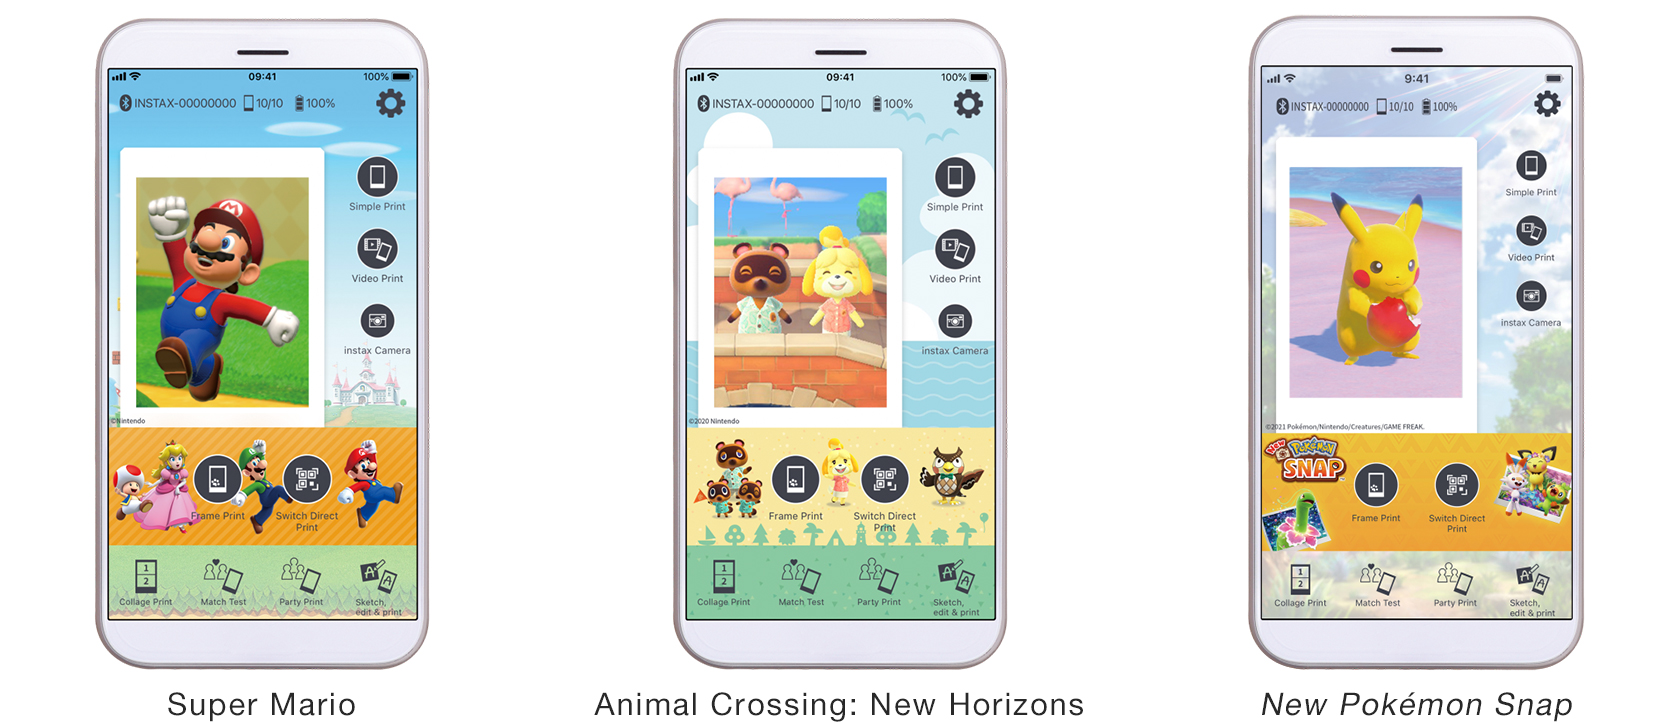 [image]App design(Super Mario, Animal Crossing: New Horizons, New Pokémon Snap)